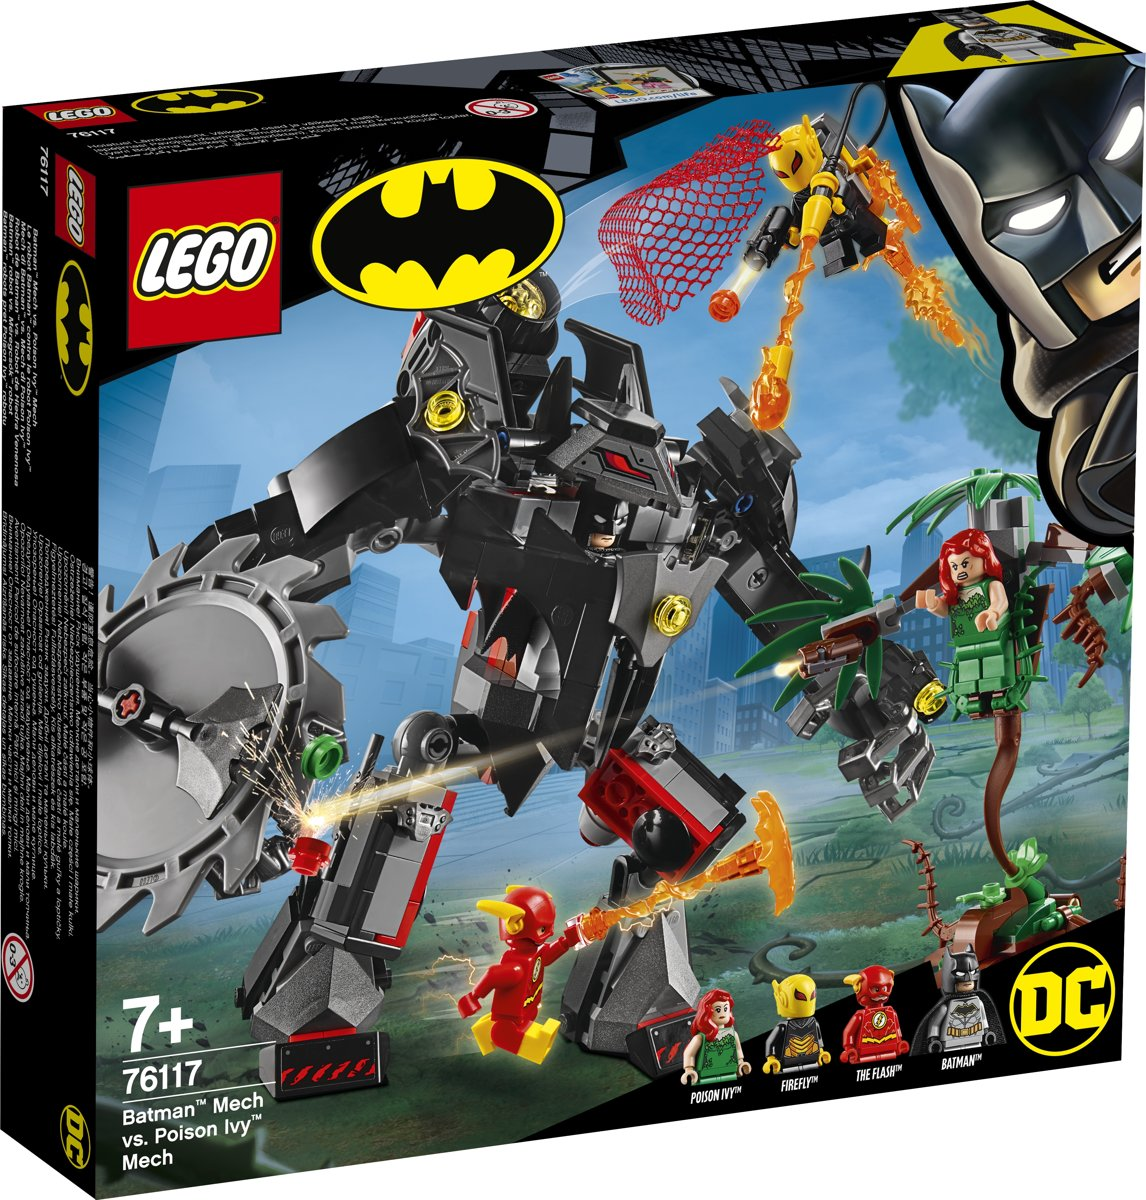 LEGO Batman Mecha vs. Poison Ivy Mecha - 76117